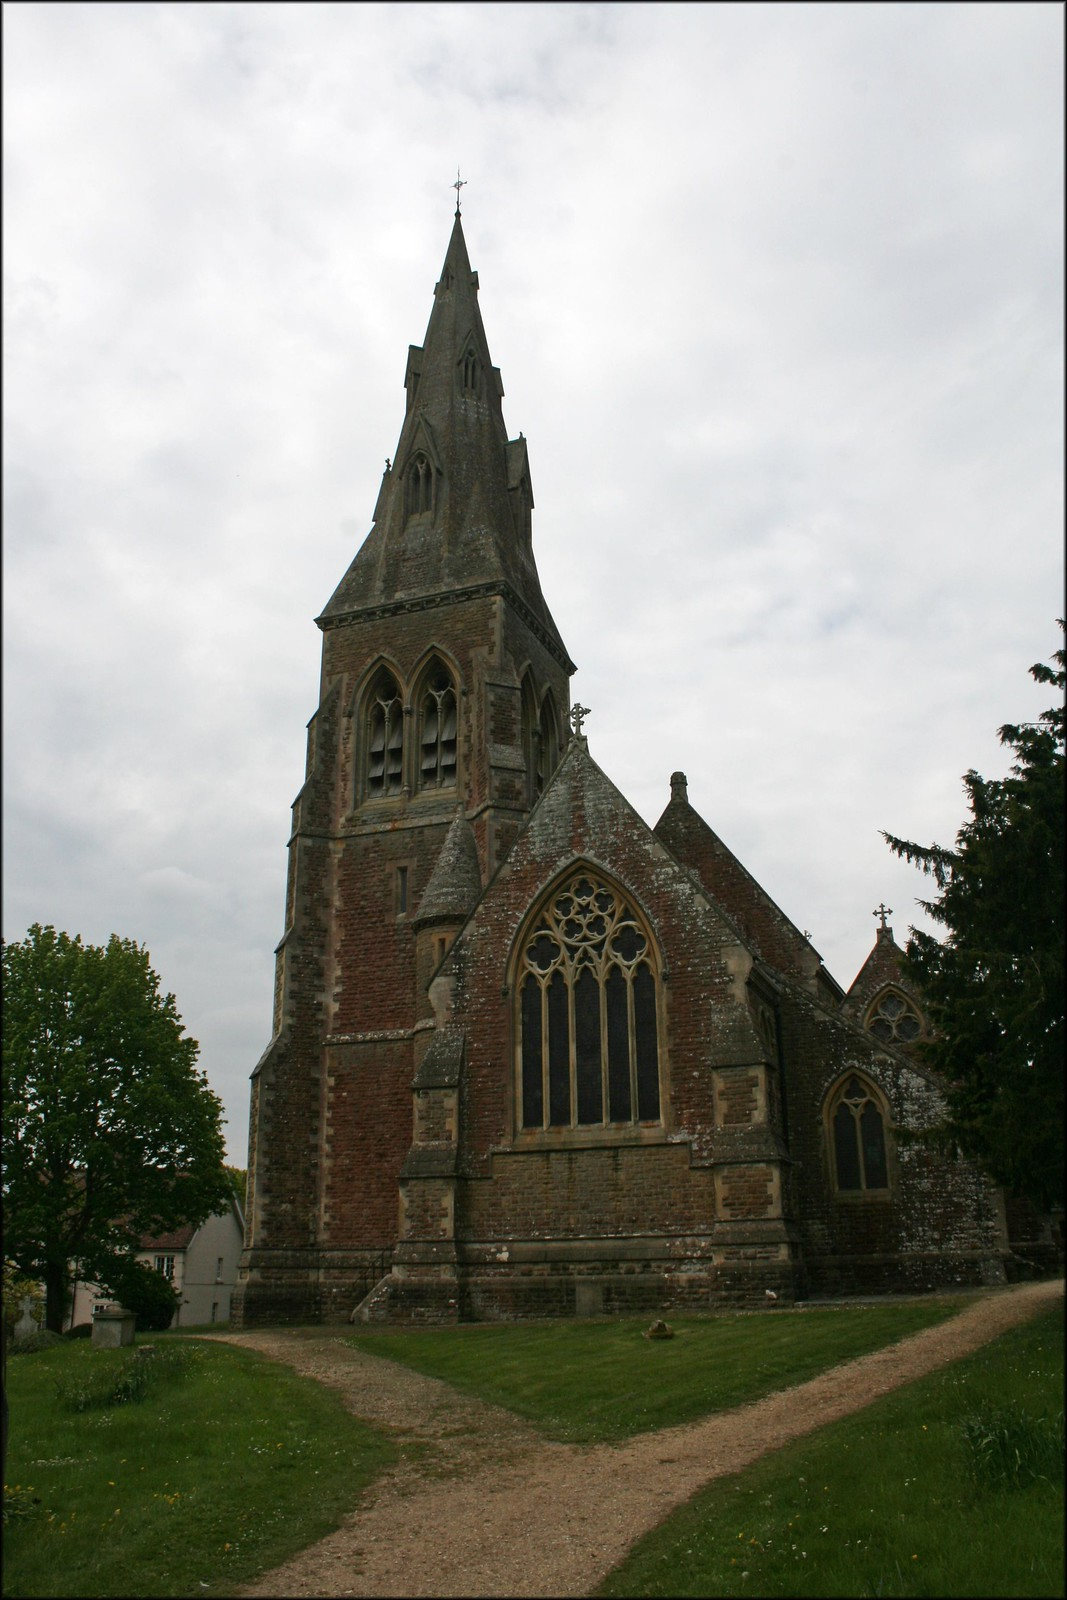 Mortimer church